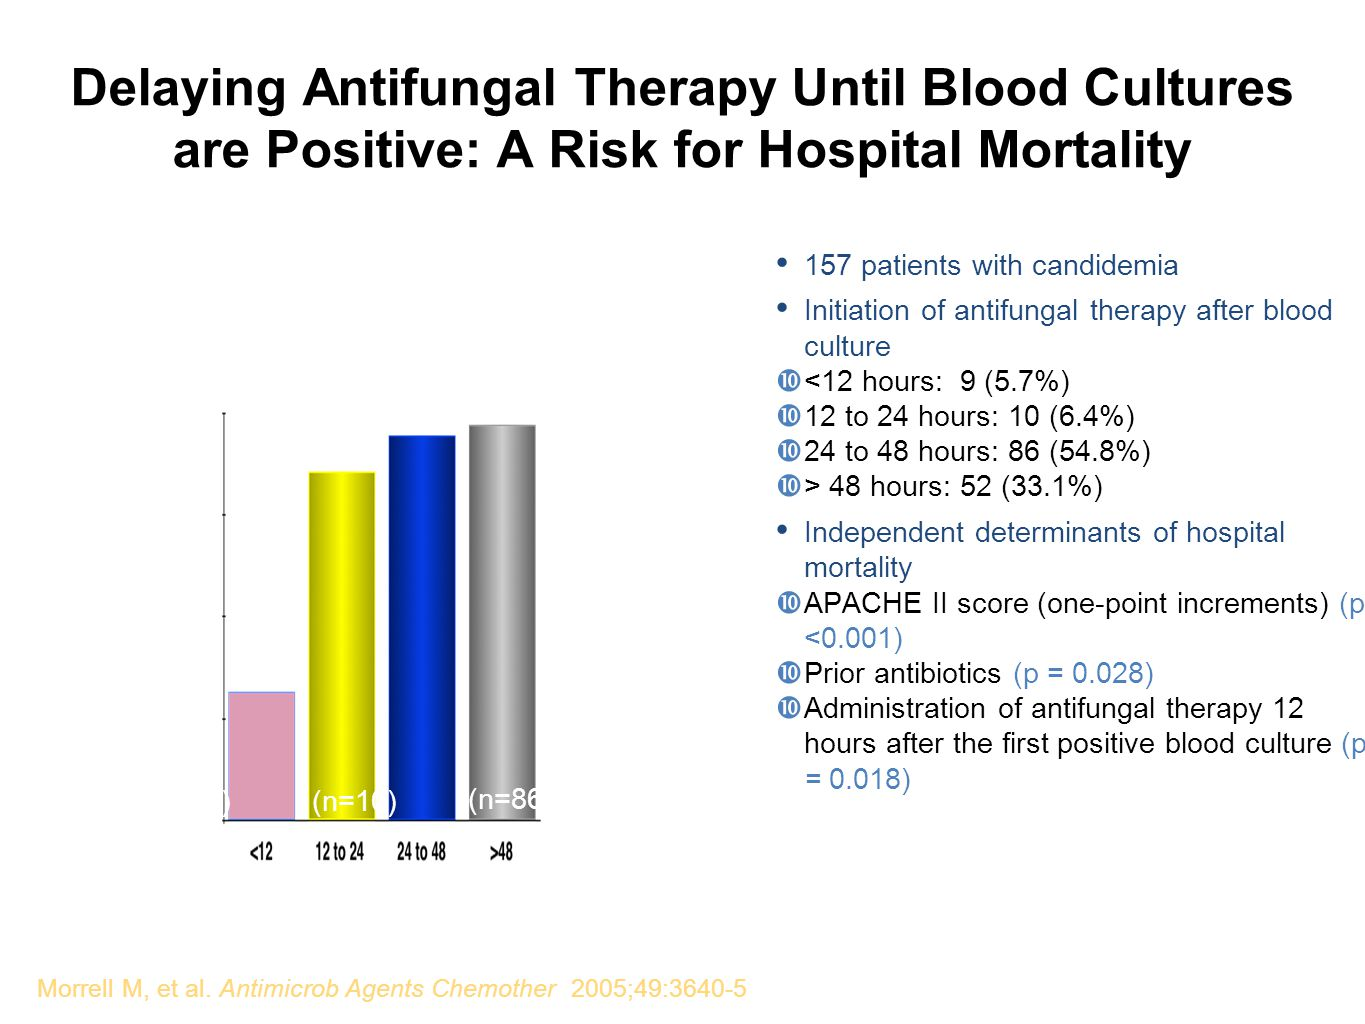 Delaying Antifungal Therapy Until Blood Cultures are Positive: A Risk for Hospital Mortality